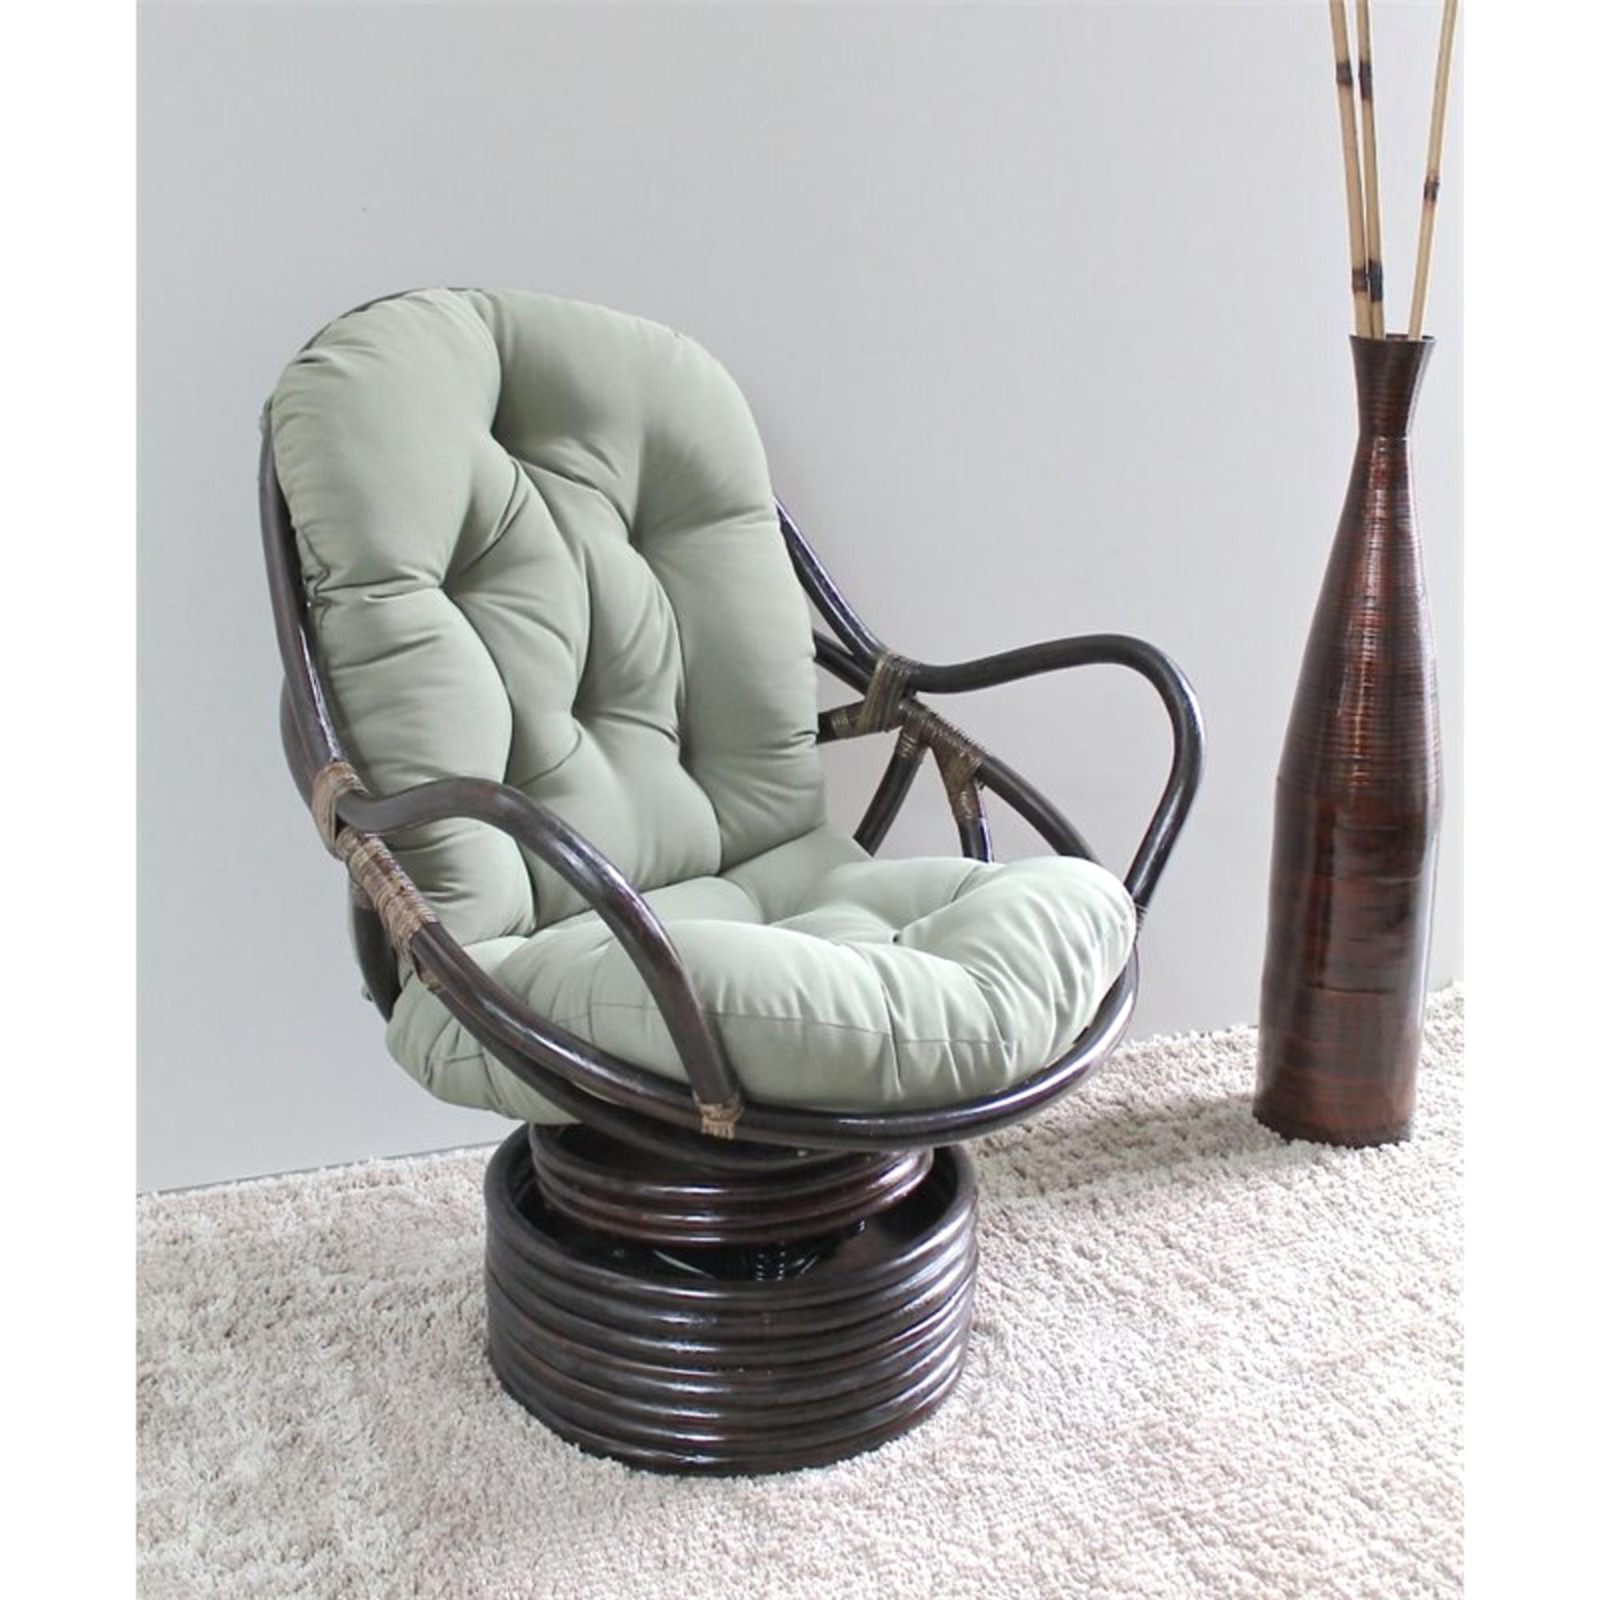 swivel chair exercise toddler round wooden table and chairs international caravan bali rattan rocker sears